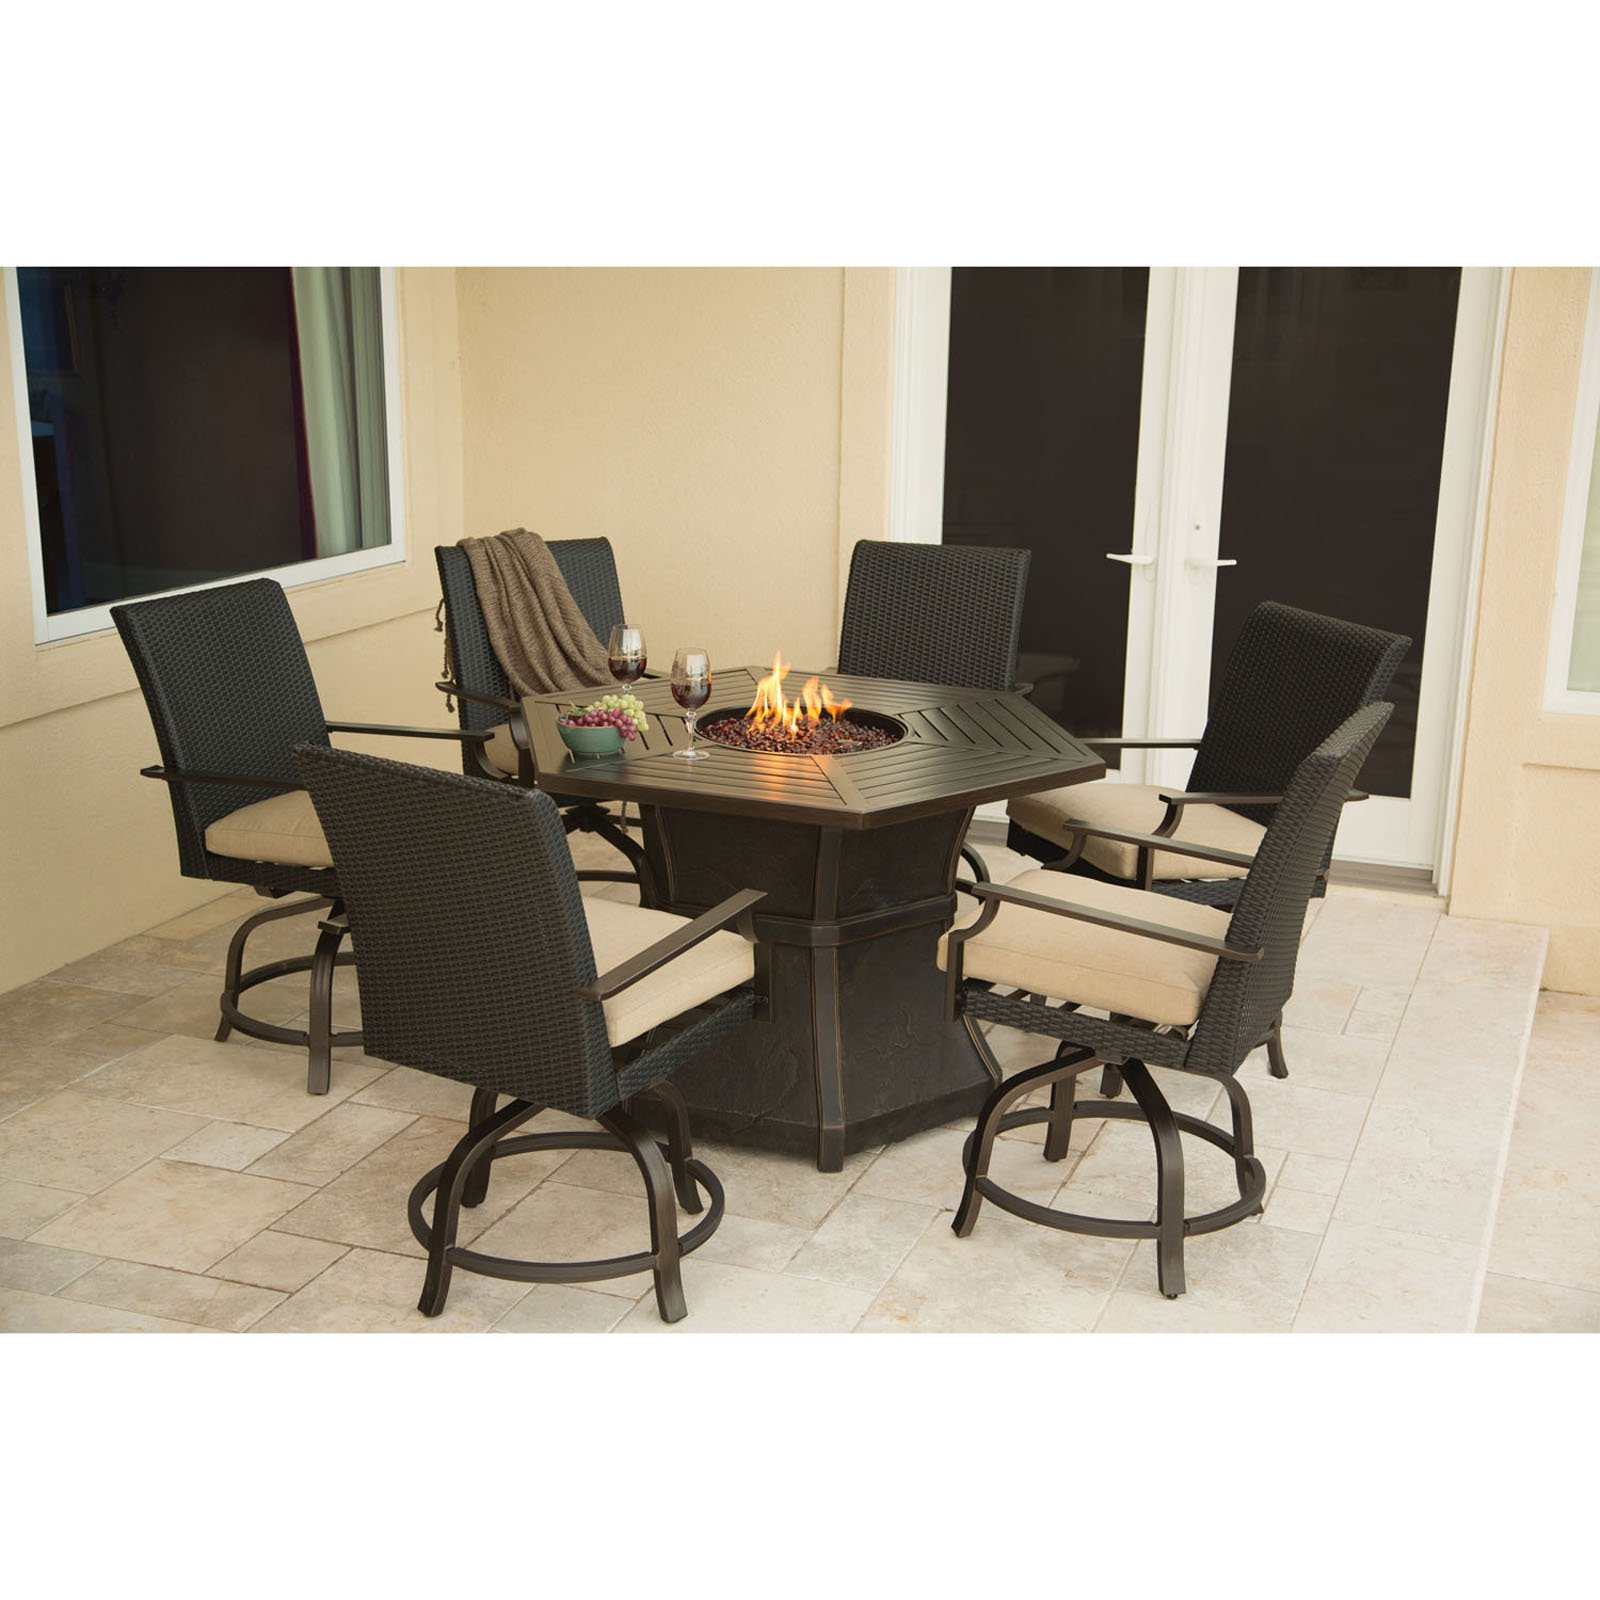 Hanover Outdoor Aspen Creek 7-Piece Fire Pit Dining Set, Natural Oat